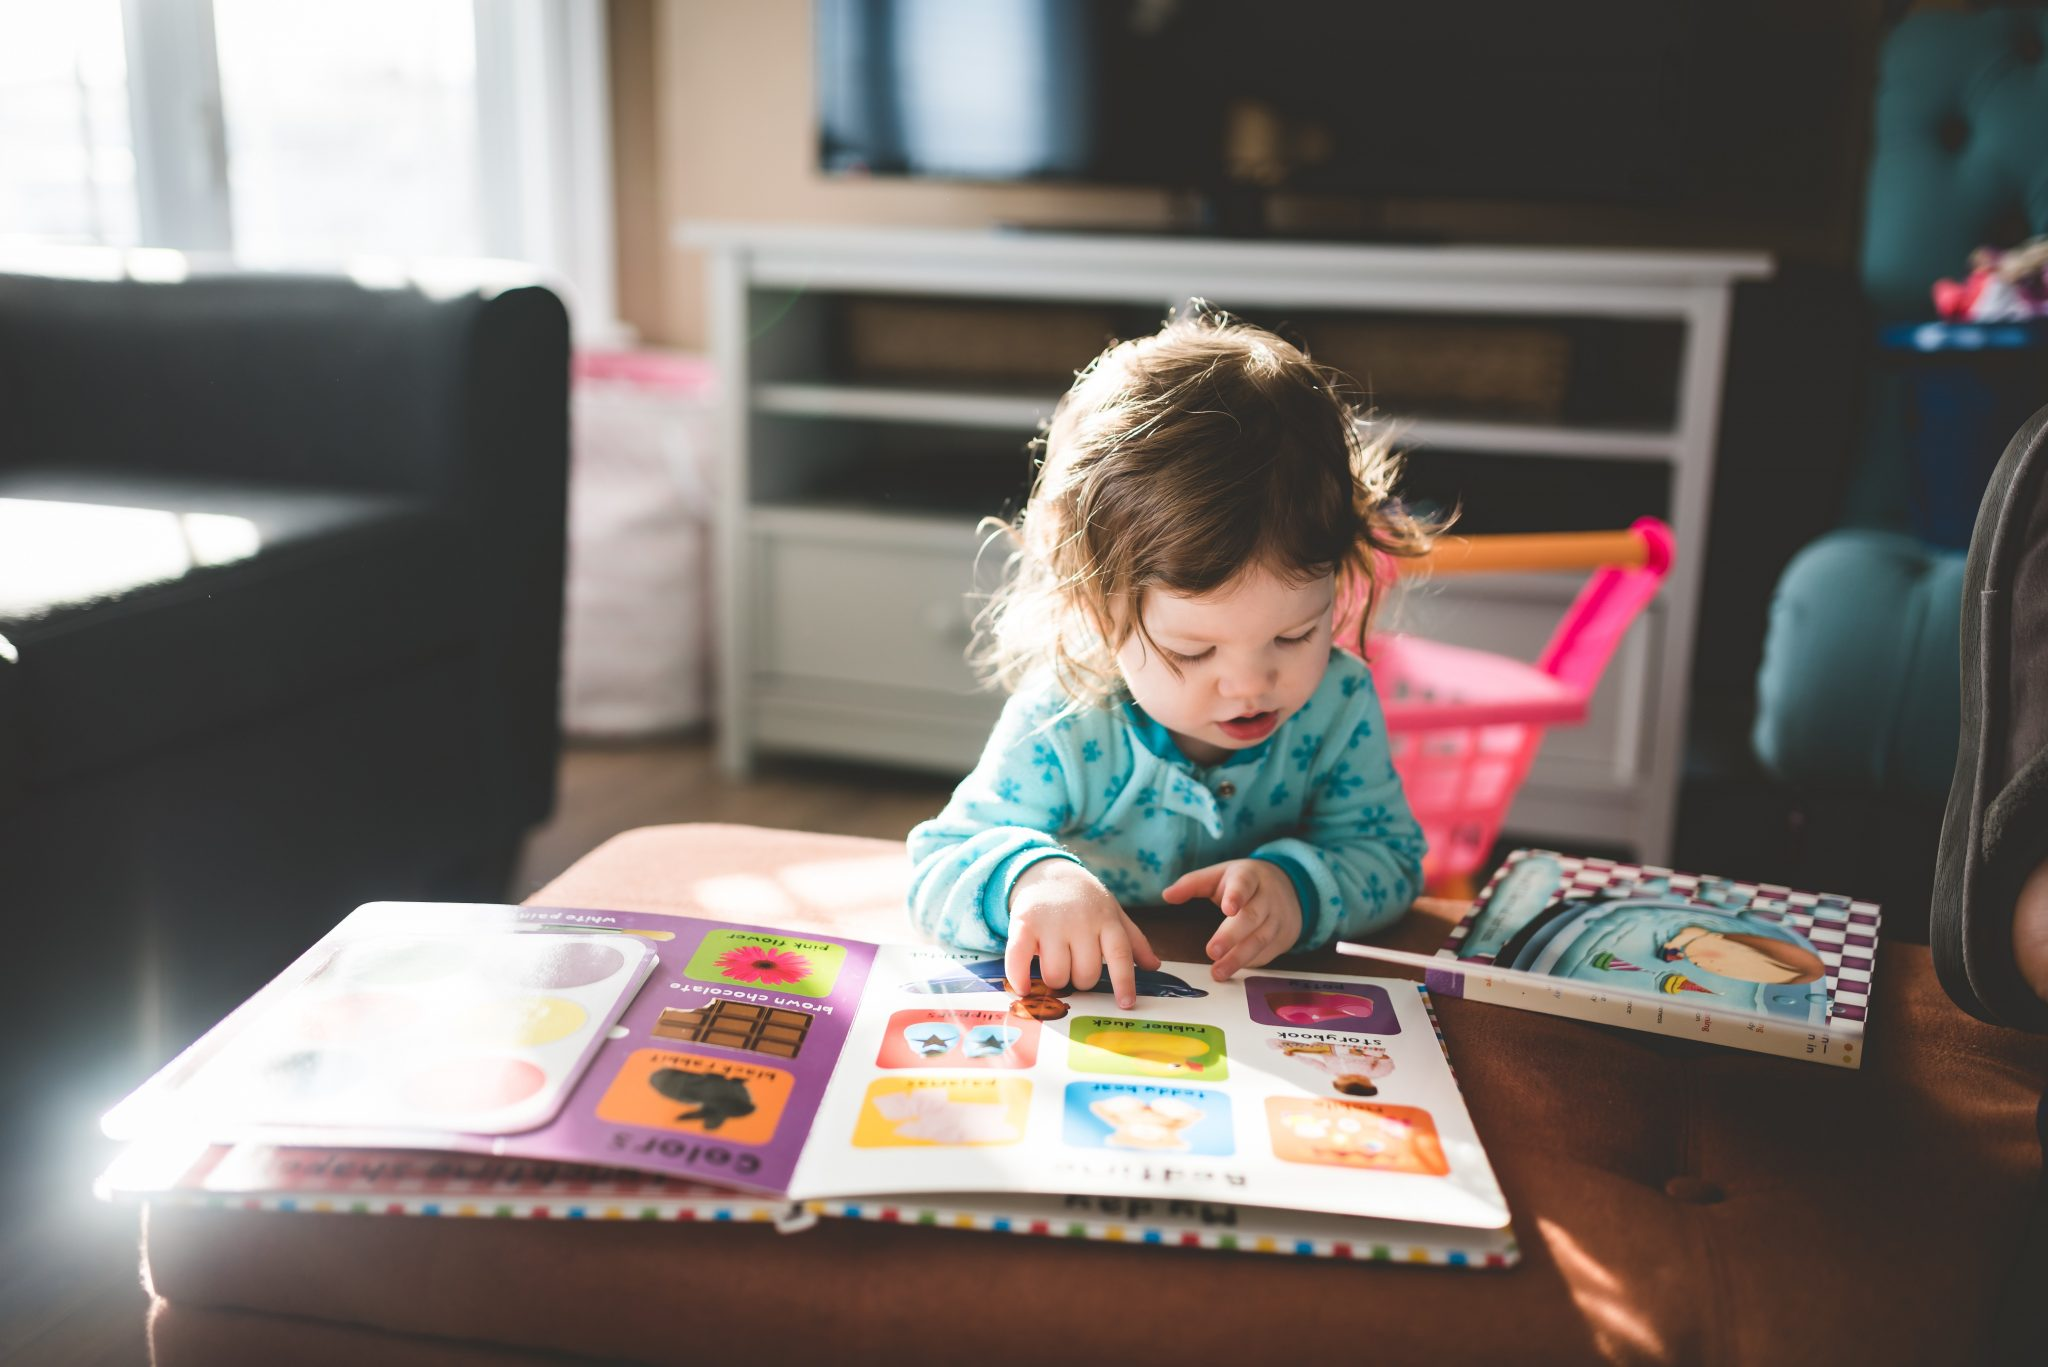 Preschool age girl reading a book and leaning on a coffee table